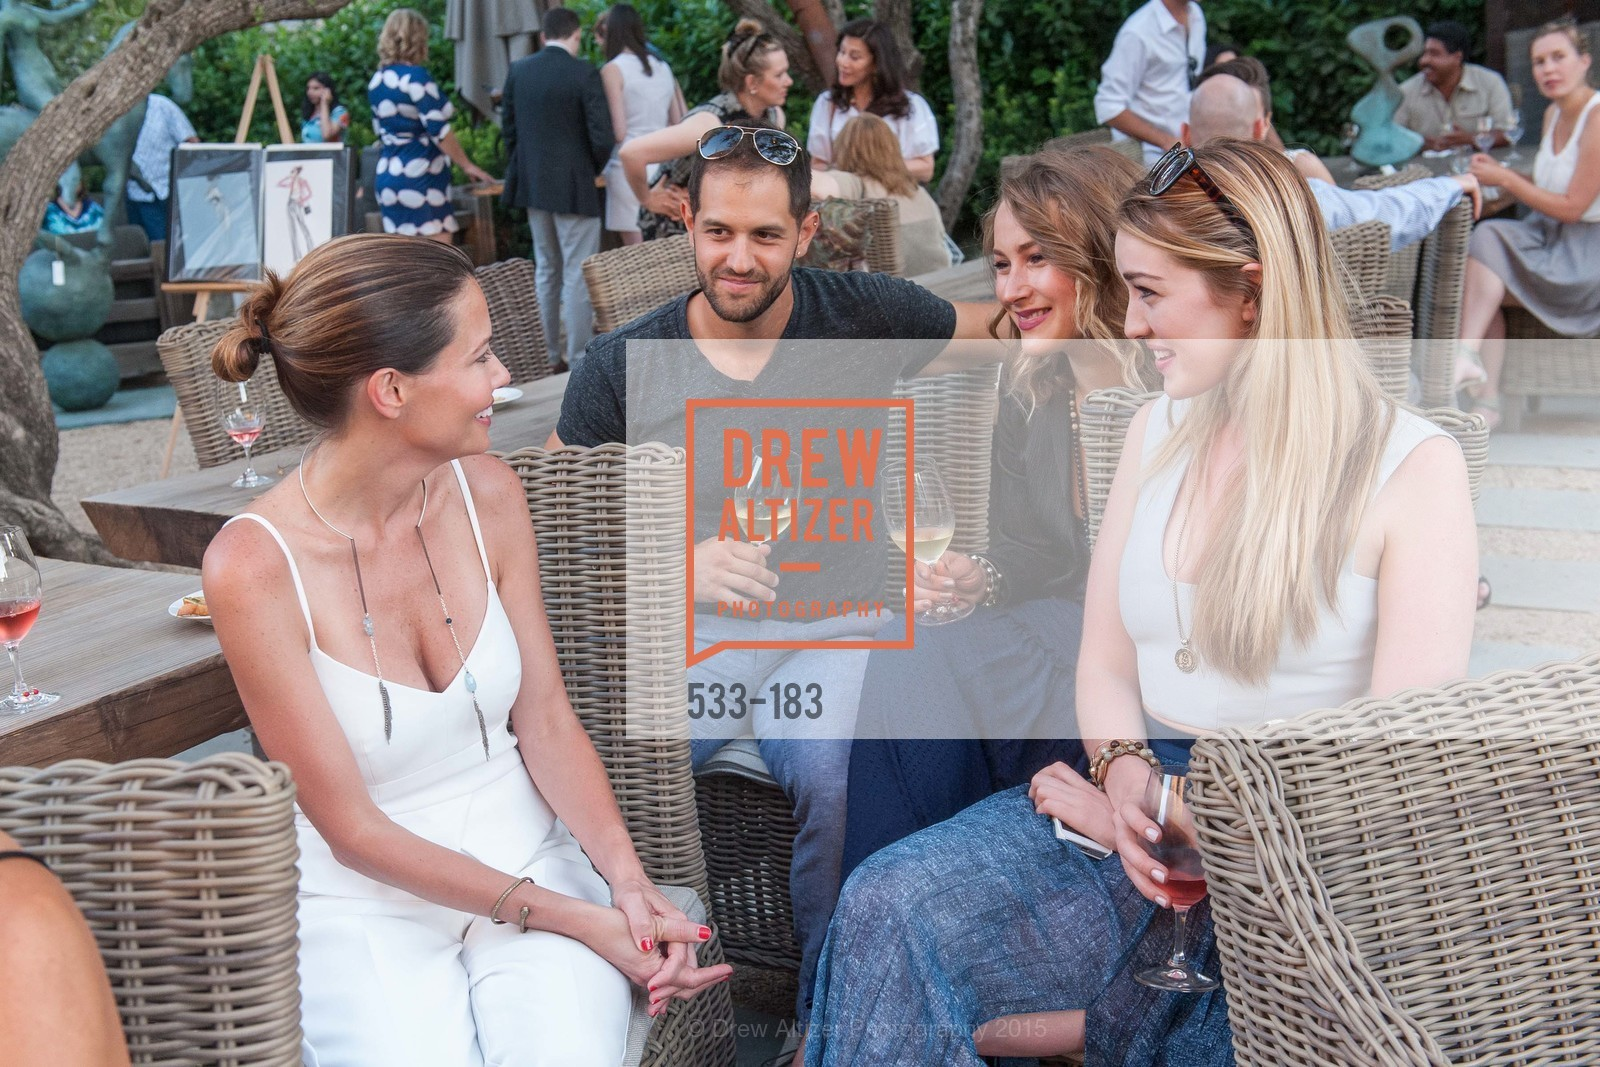 Mary Francis, Svetlana Kolesnikova, Alison Dibella, Oyster Cup Polo Tournament Preview Party Hosted by Cerro Pampa Polo Club and Stick & Ball, Ma(i)sonry. 6711 Washington St, June 25th, 2015,Drew Altizer, Drew Altizer Photography, full-service agency, private events, San Francisco photographer, photographer california